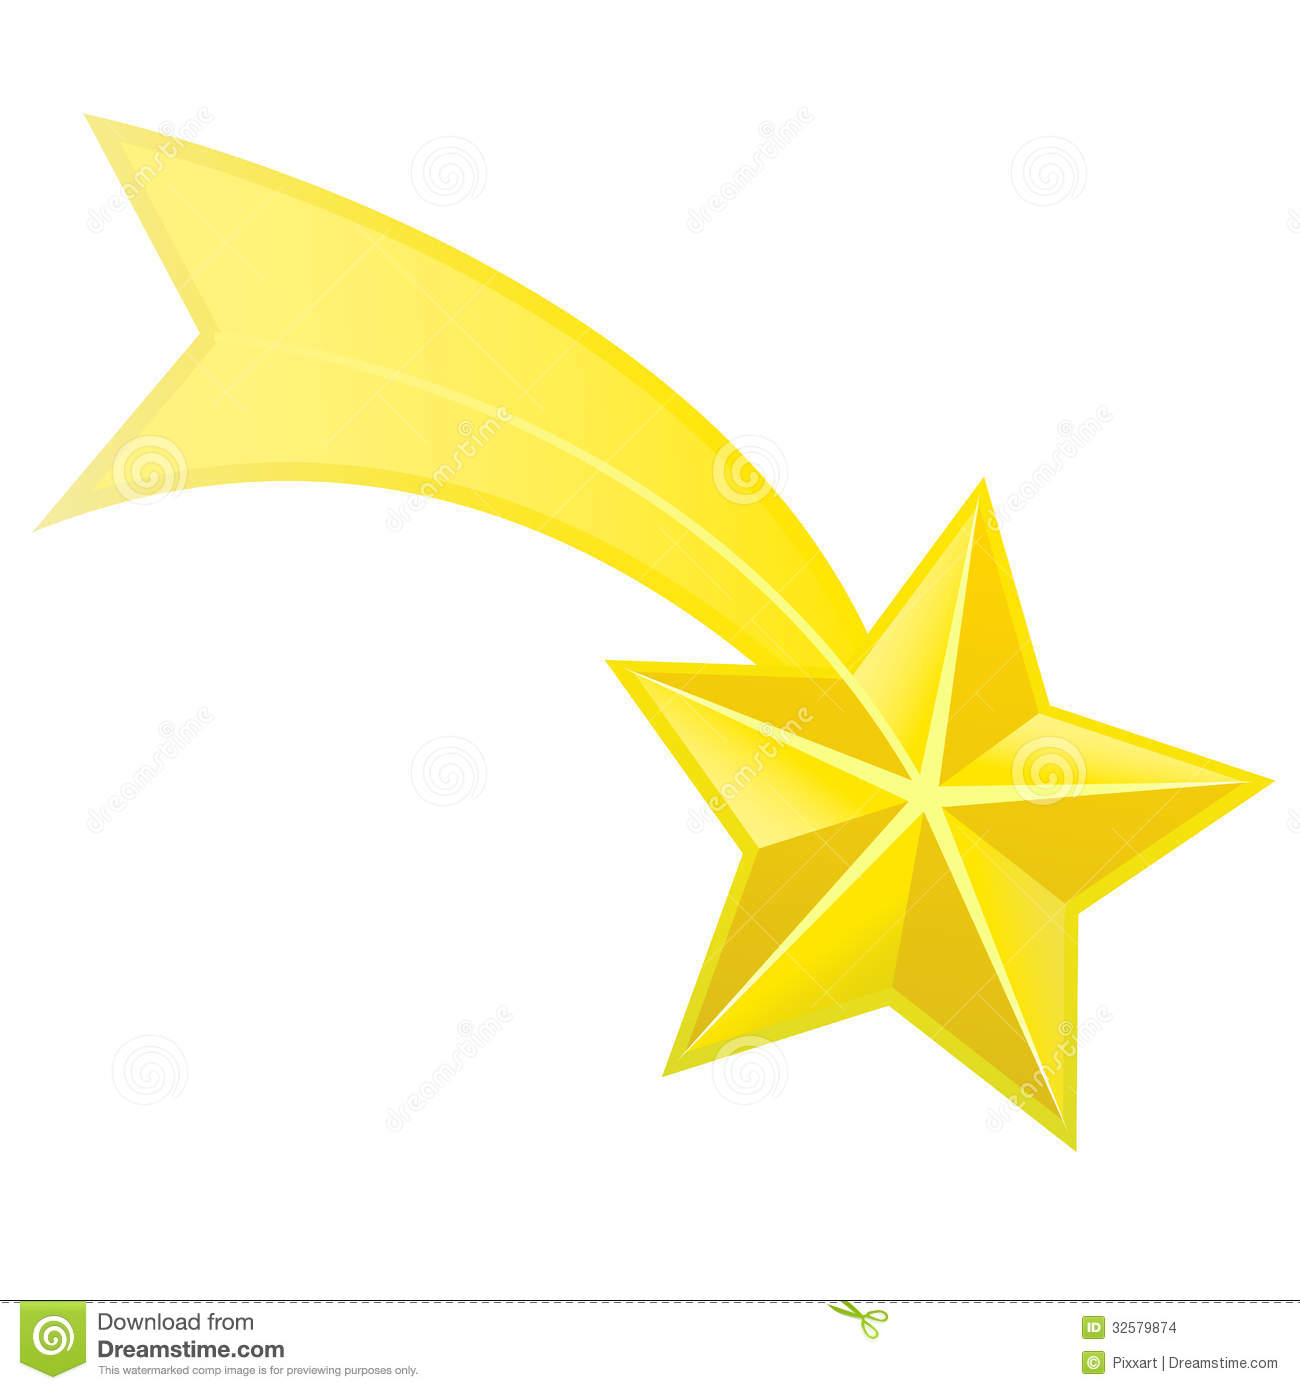 Shooting Star Stock Images - Image: 32579874